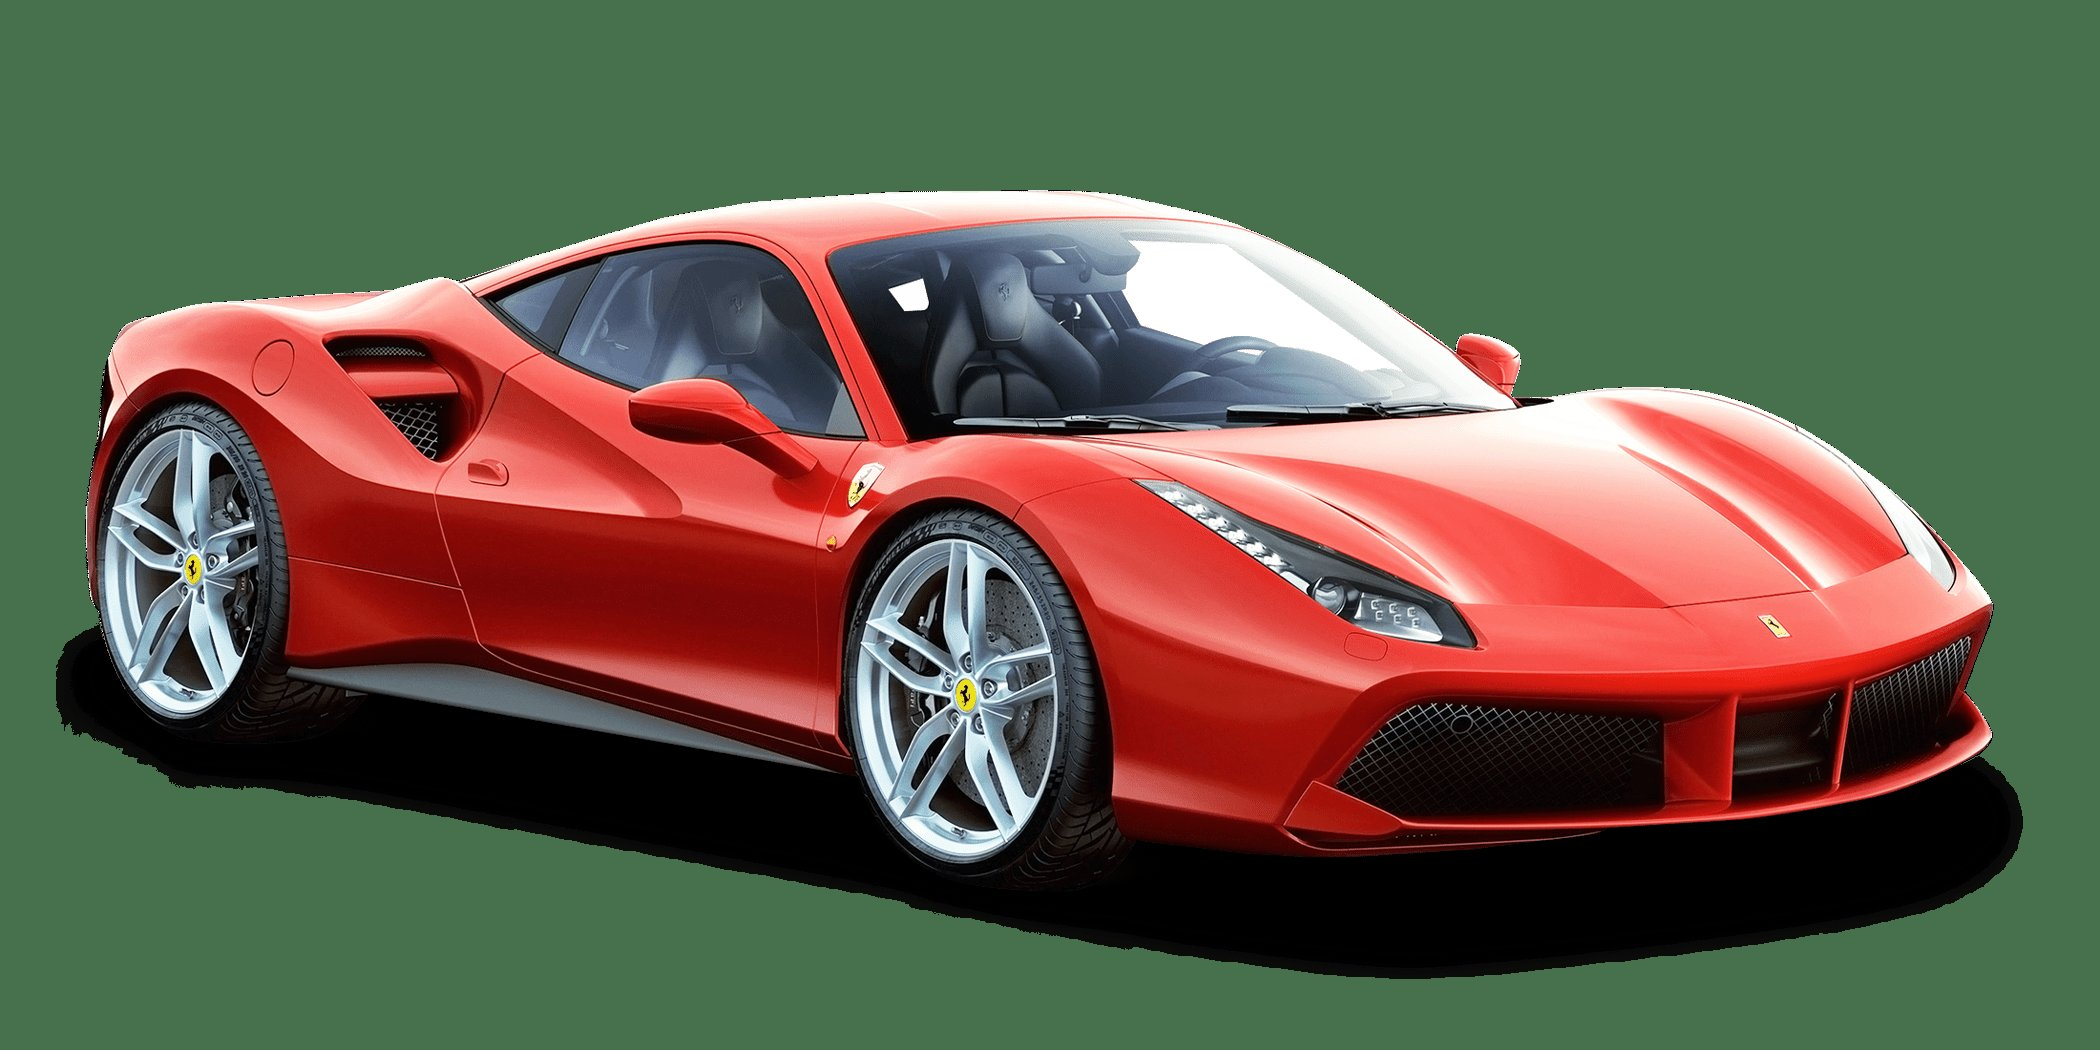 New Red Ferrari 488 Gtb Car Png Image Pngpix On This Month